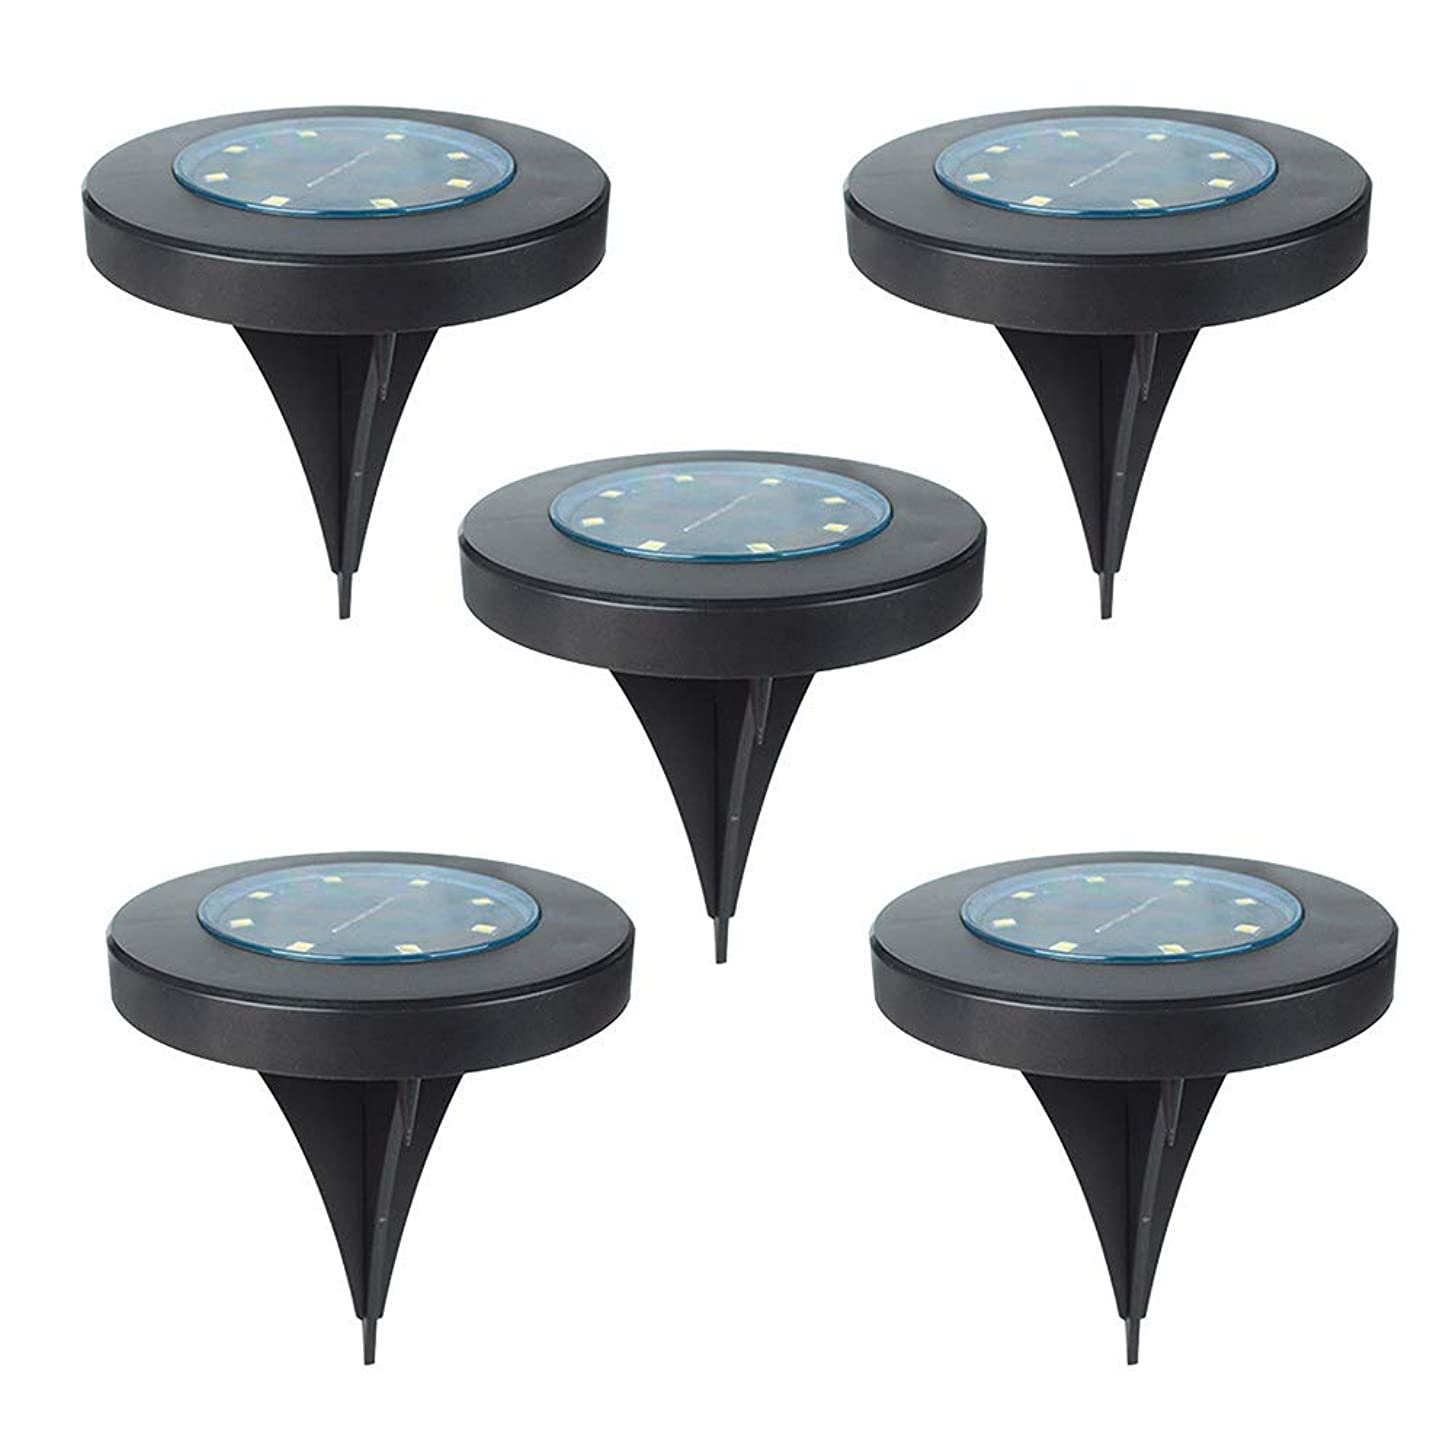 5 STICKERS Bled Solar Powered Floor Lights Durable Waterproof Lamps for Patio Lighting Ceiling Fans (Color : -, Size : -)